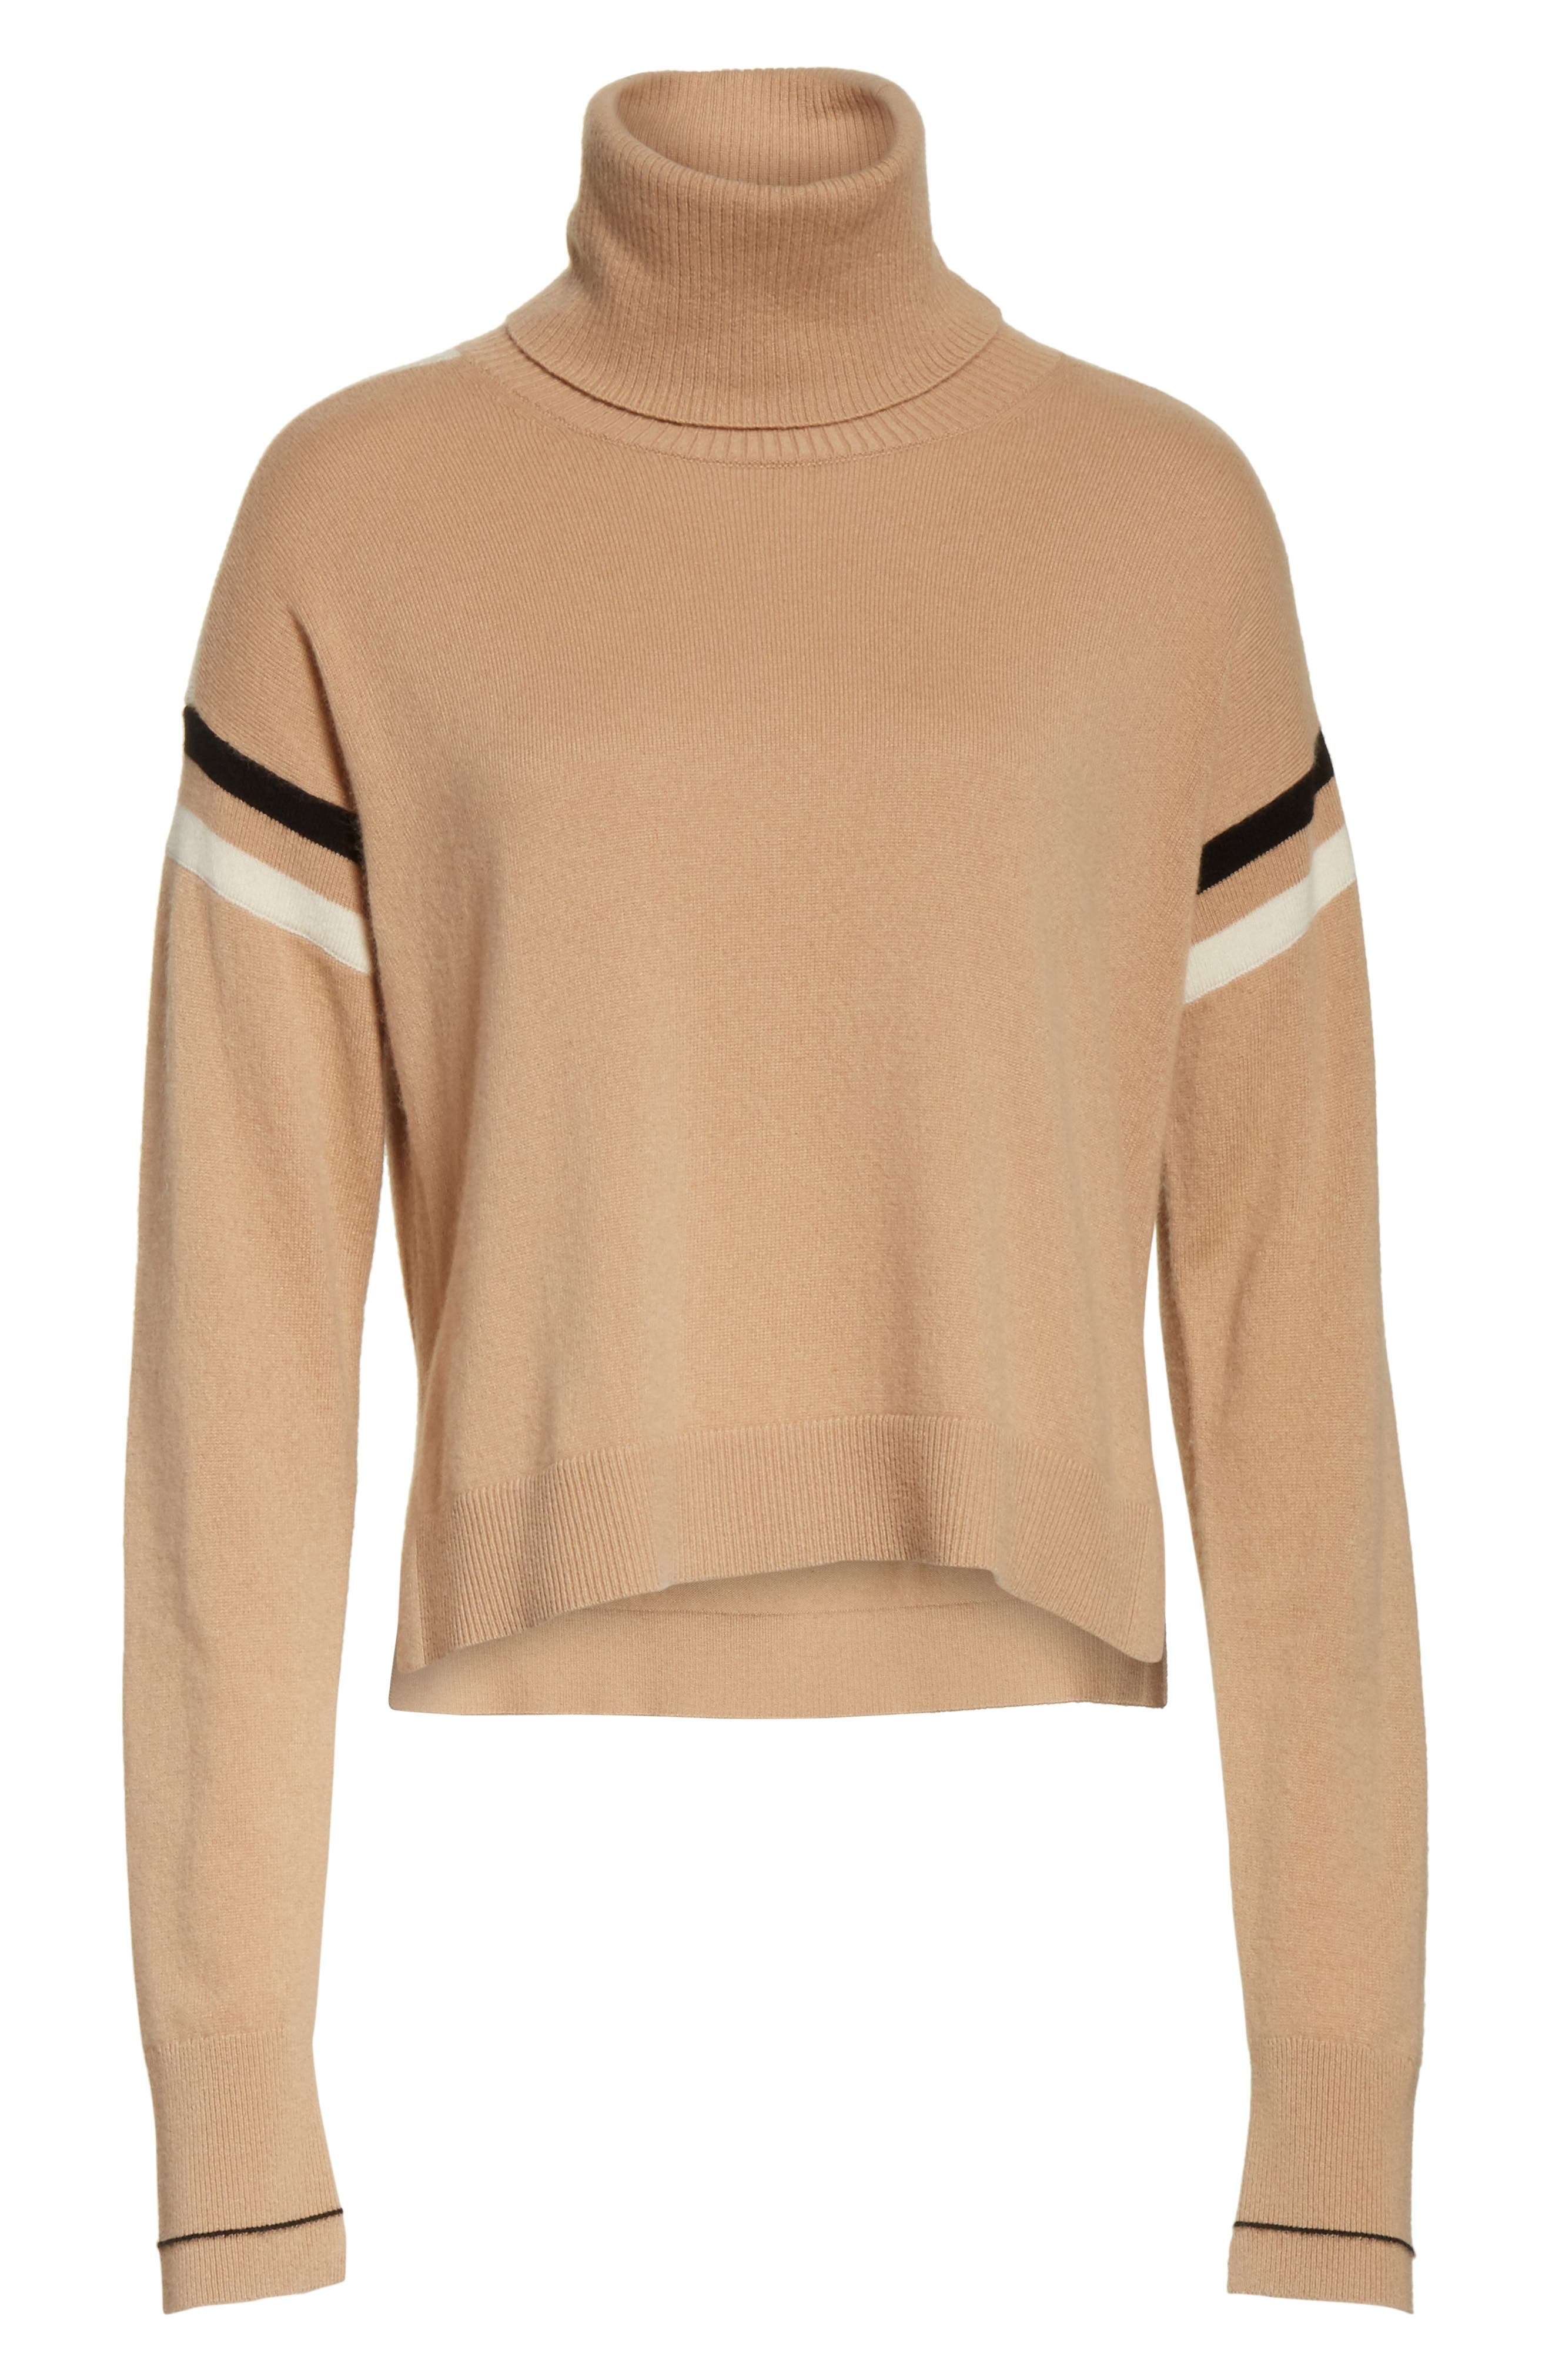 Canter Cashmere Turtleneck,                             Alternate thumbnail 6, color,                             Camel/ Ivory/ Black